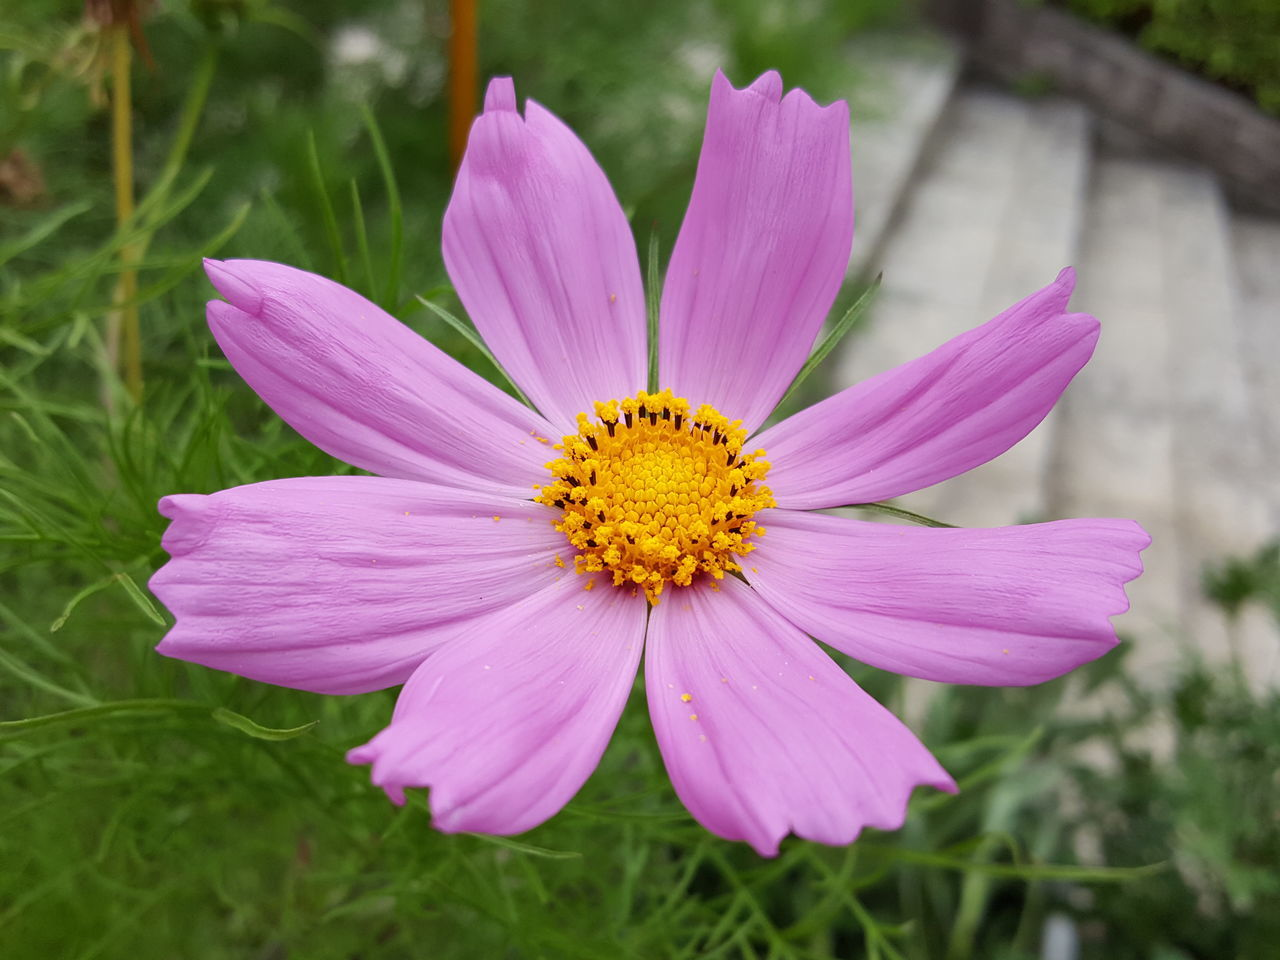 flower, petal, fragility, flower head, nature, beauty in nature, freshness, growth, pollen, plant, blooming, outdoors, no people, cosmos flower, day, close-up, pink color, yellow, osteospermum, crocus